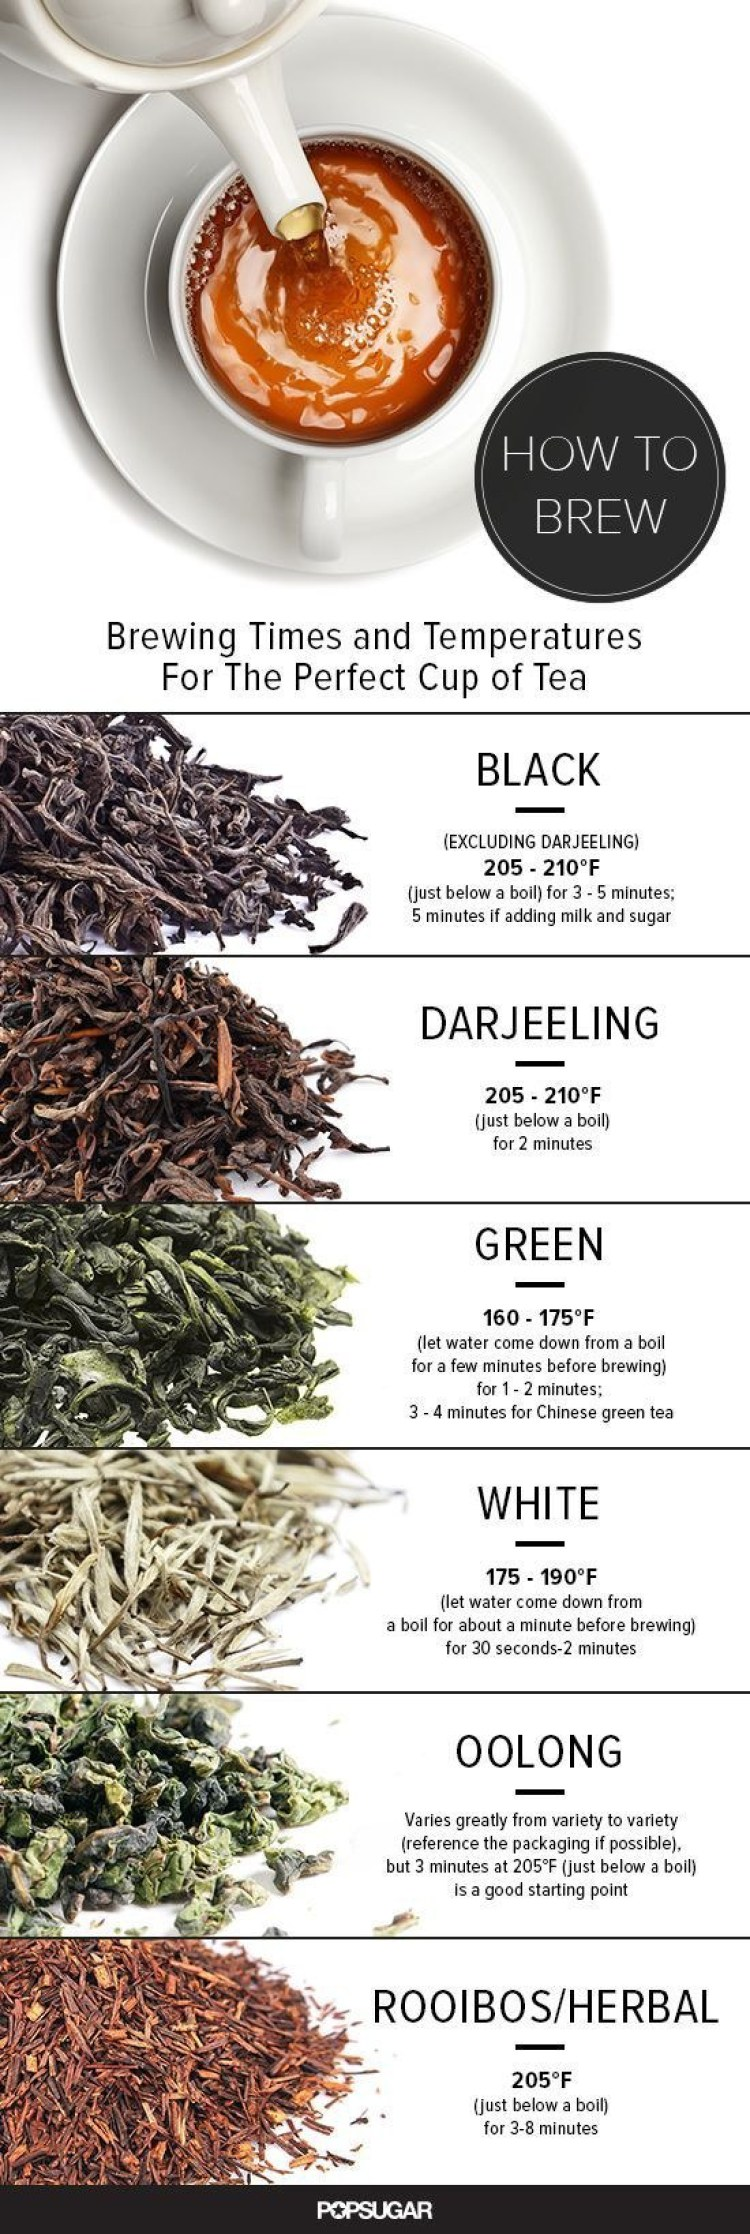 Brewing Tips For 6 Types Of Tea